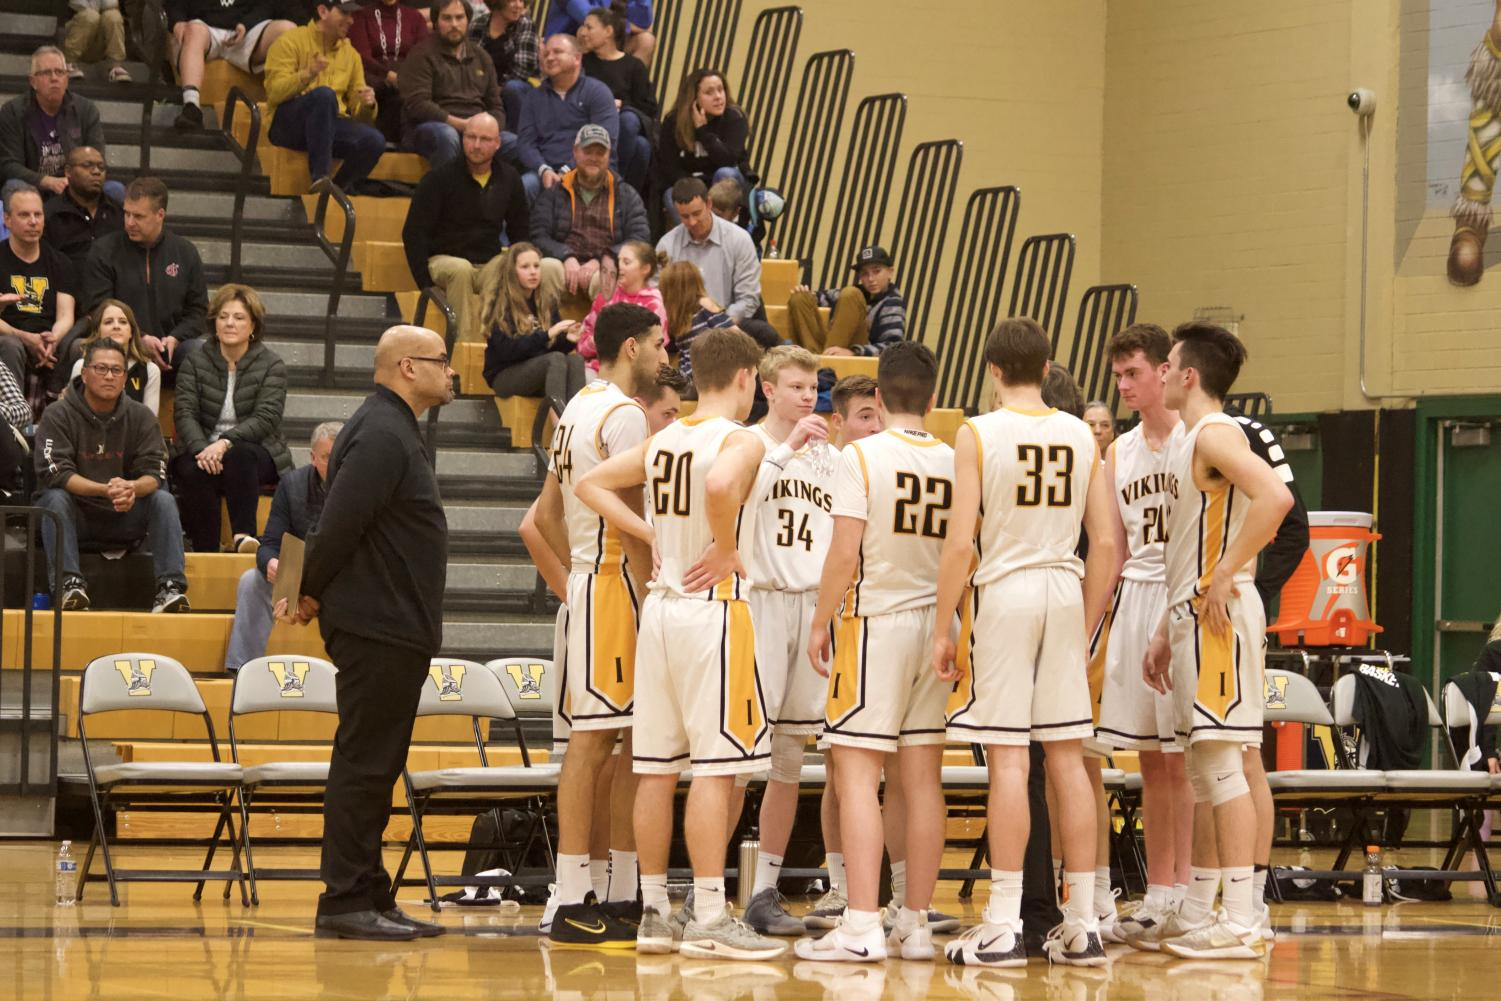 The team huddles around head coach Gregory Lowell in the final seconds of their 68-67 win against Bothell High School.